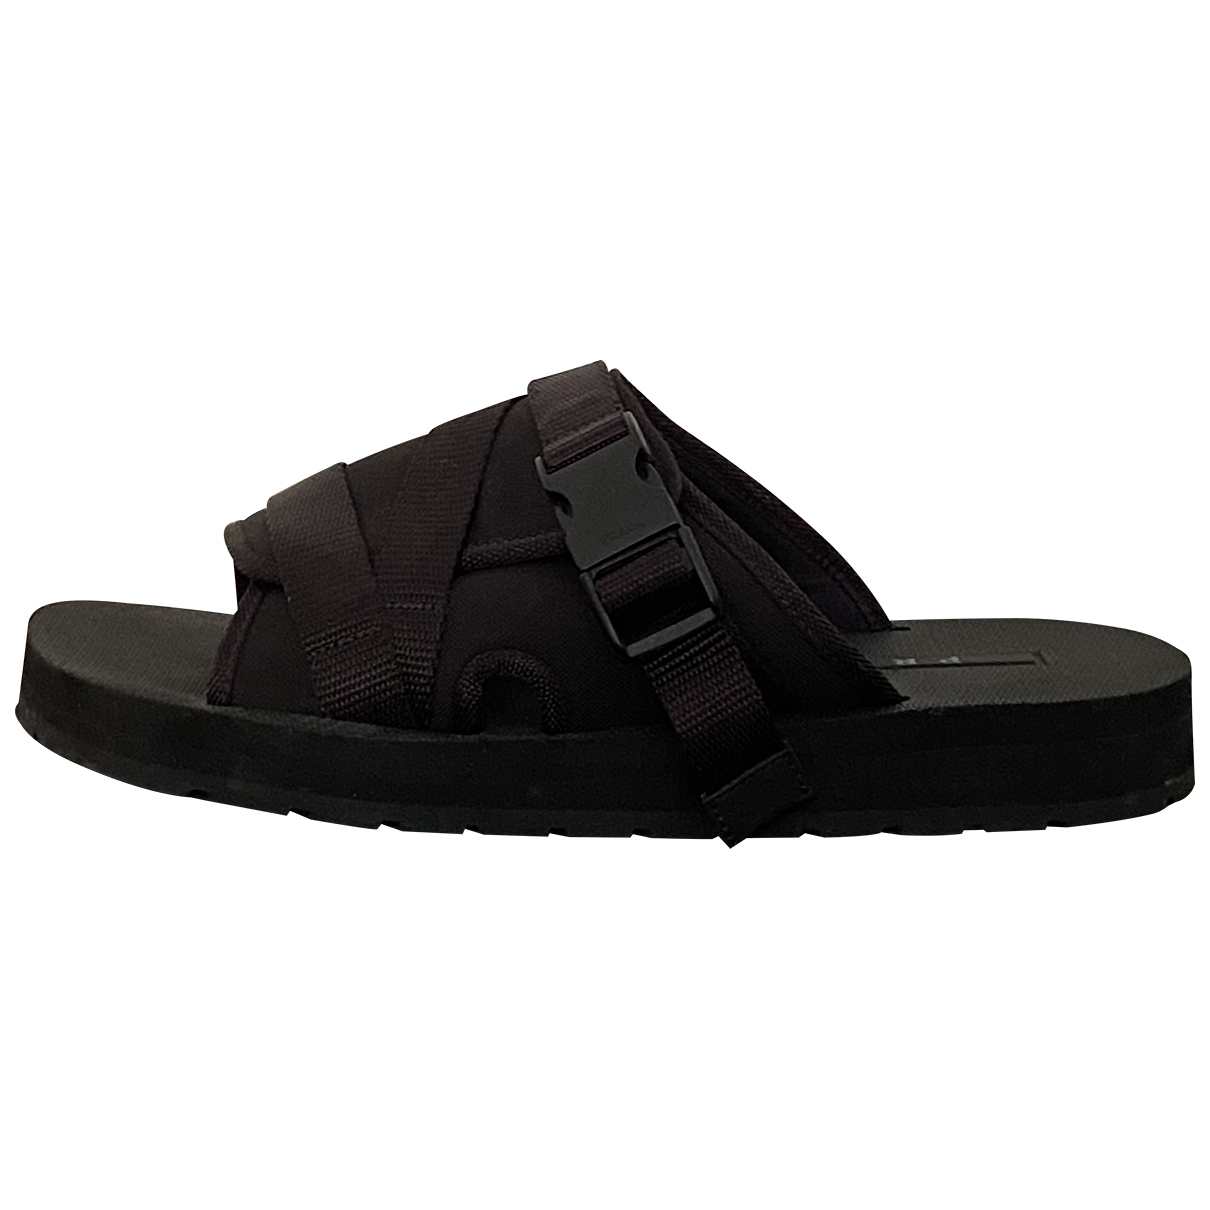 Prada \N Black Cloth Sandals for Men 41 EU